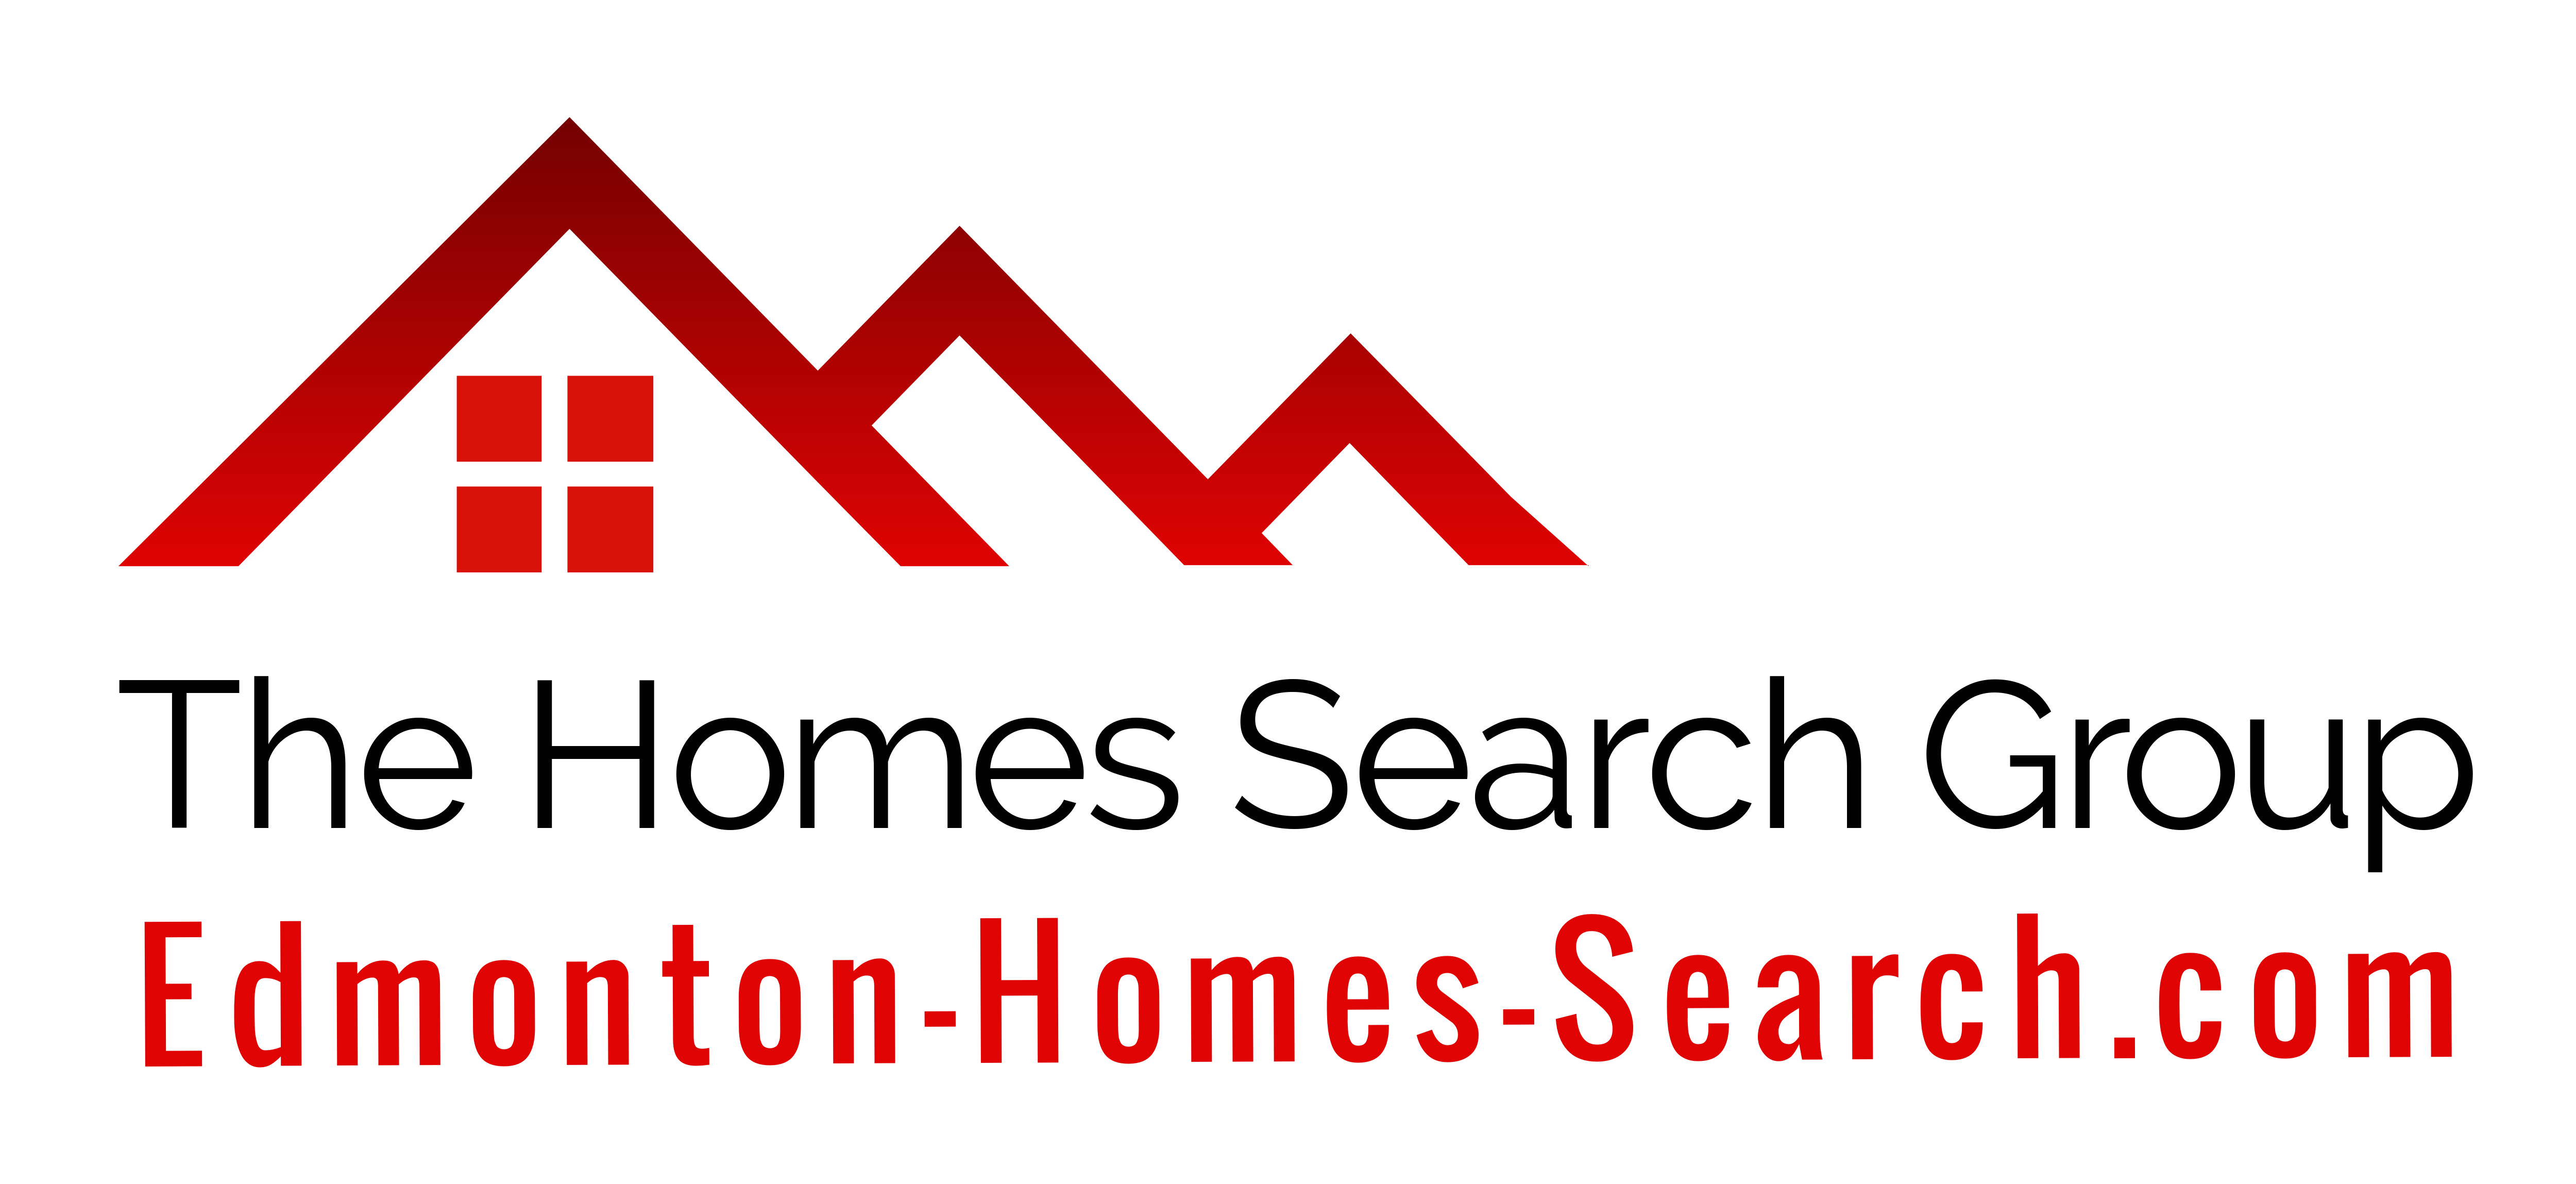 Searching for listings in Edmonton